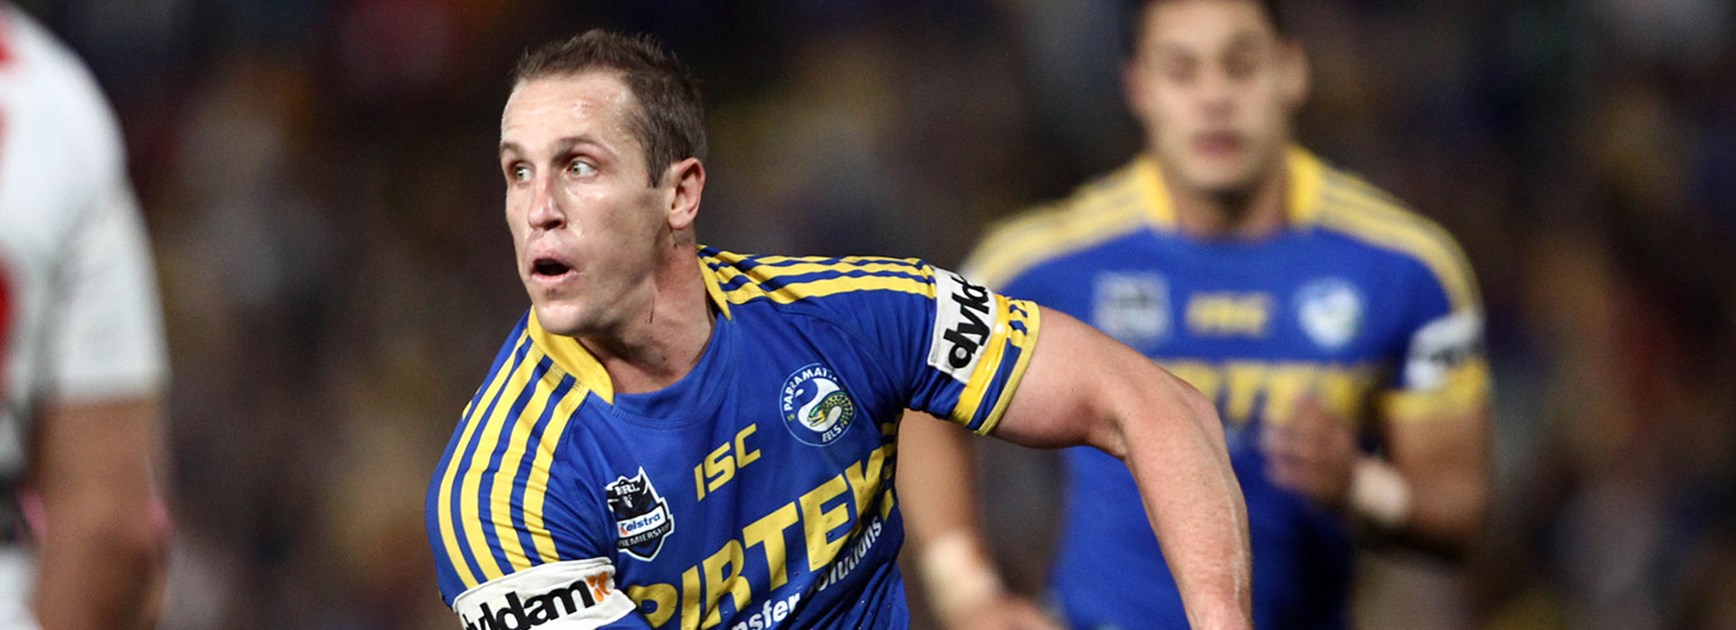 Jeff Robson has returned to the Parramatta Eels after stints with the Sharks and the Warriors.